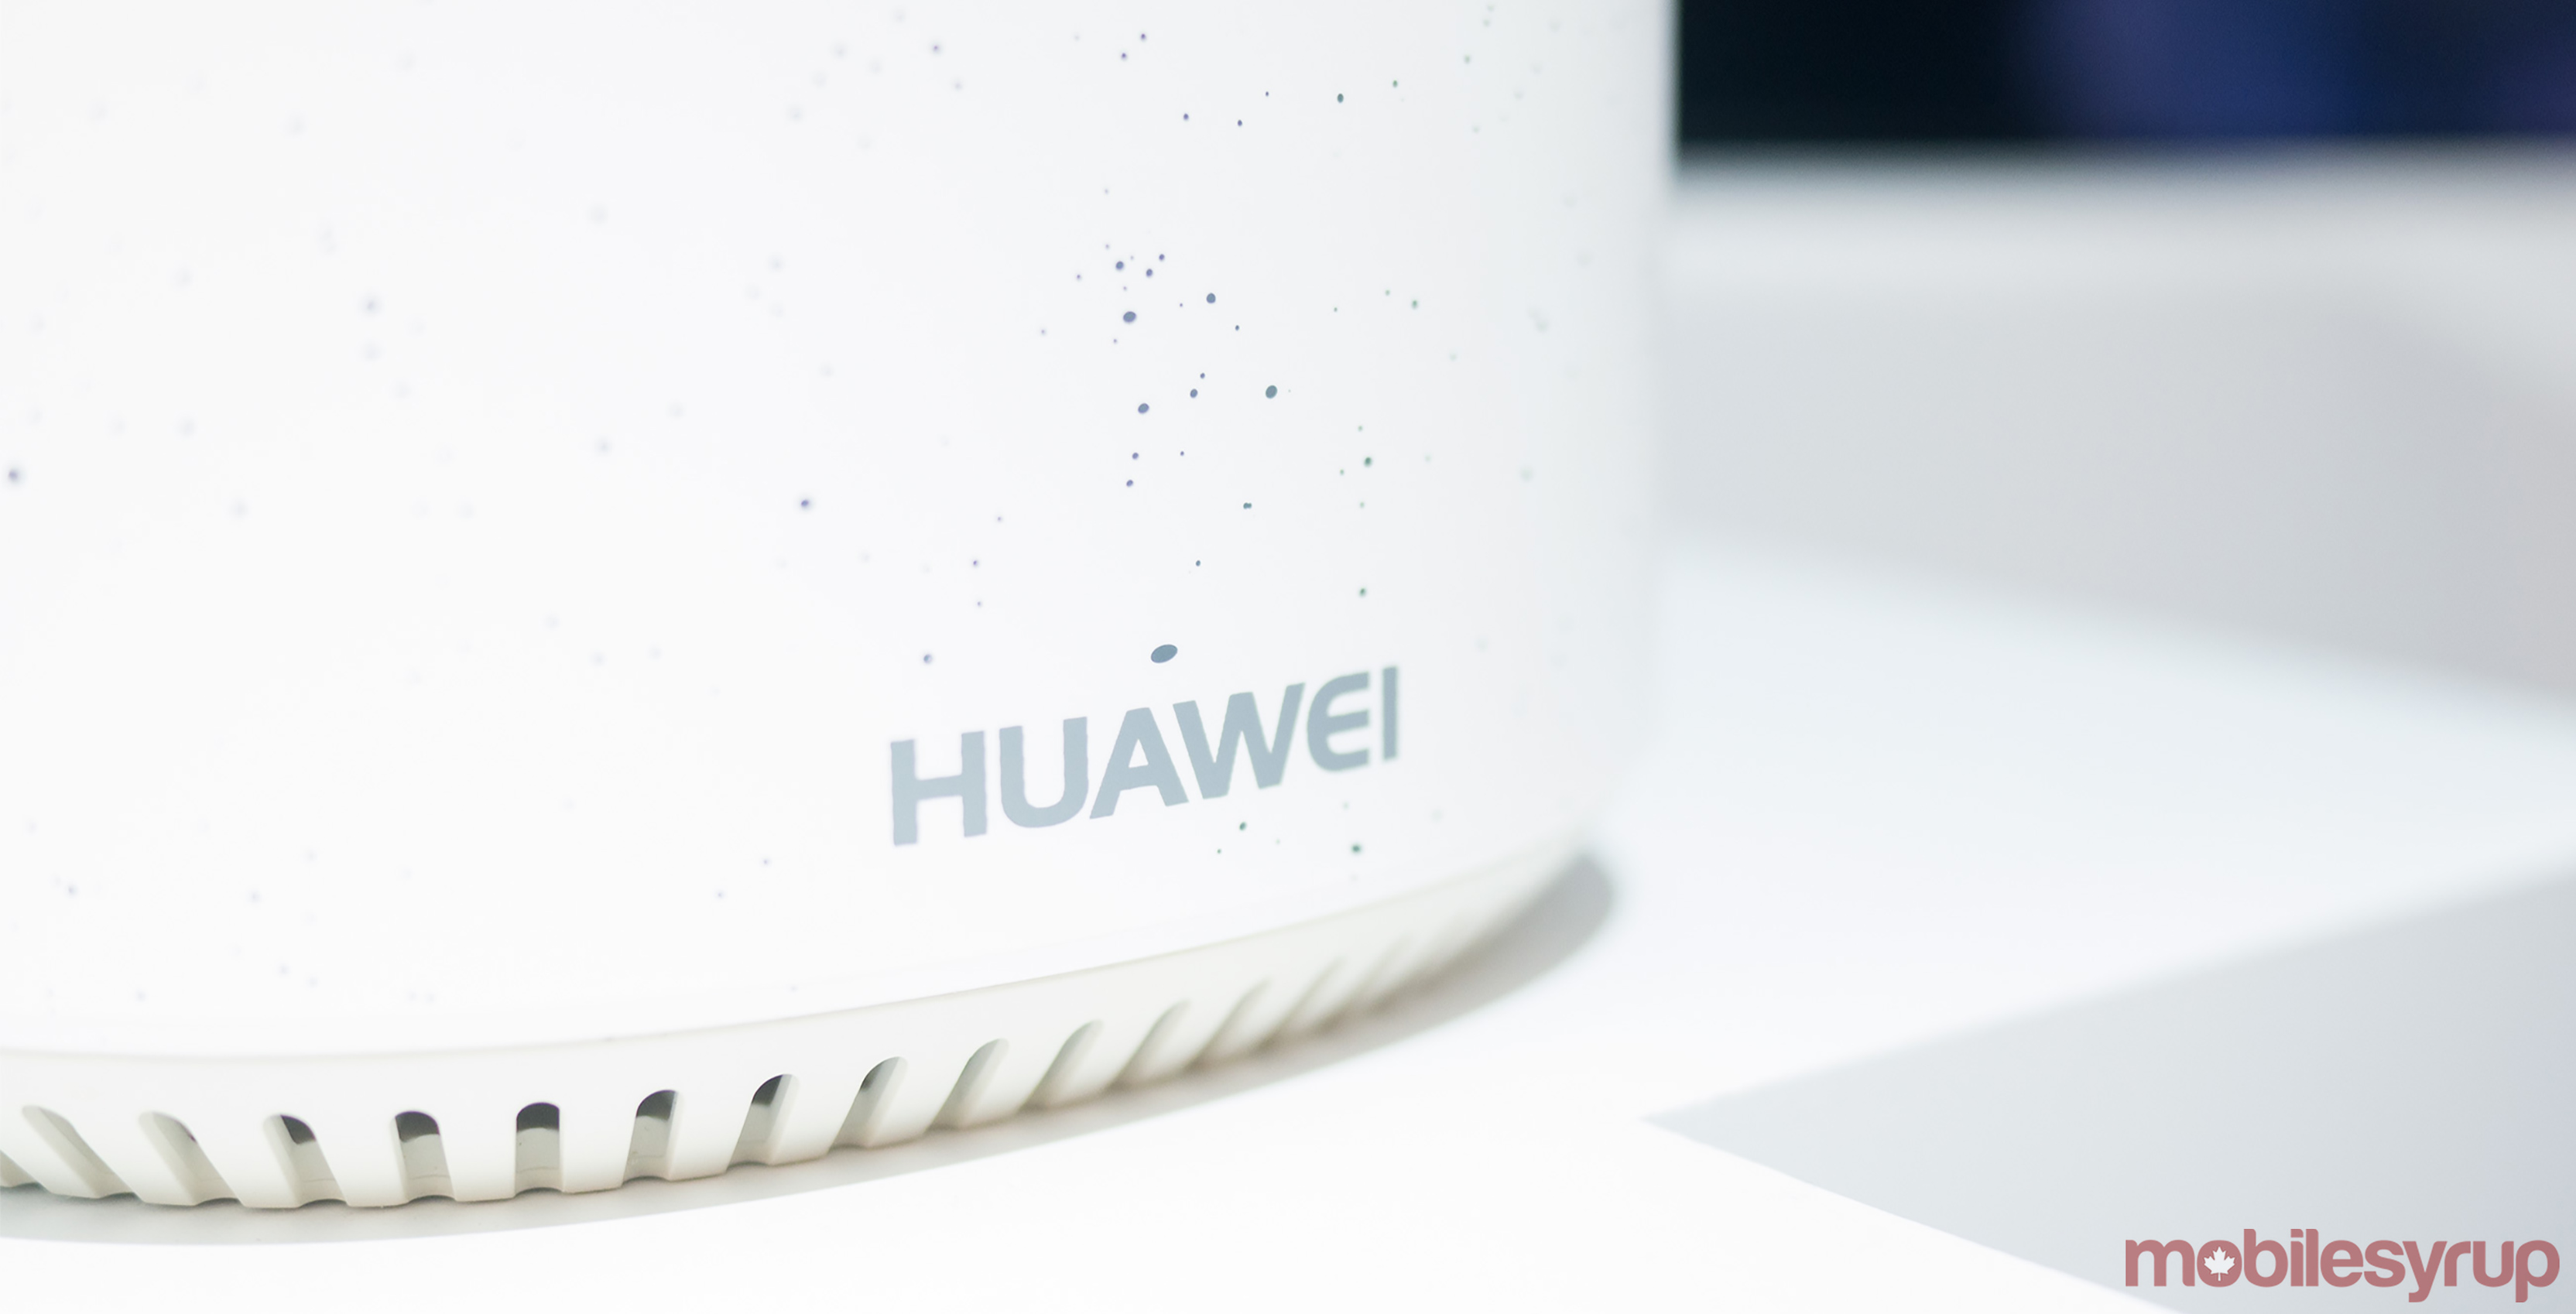 Huawei Canada executive says banning company wouldn't